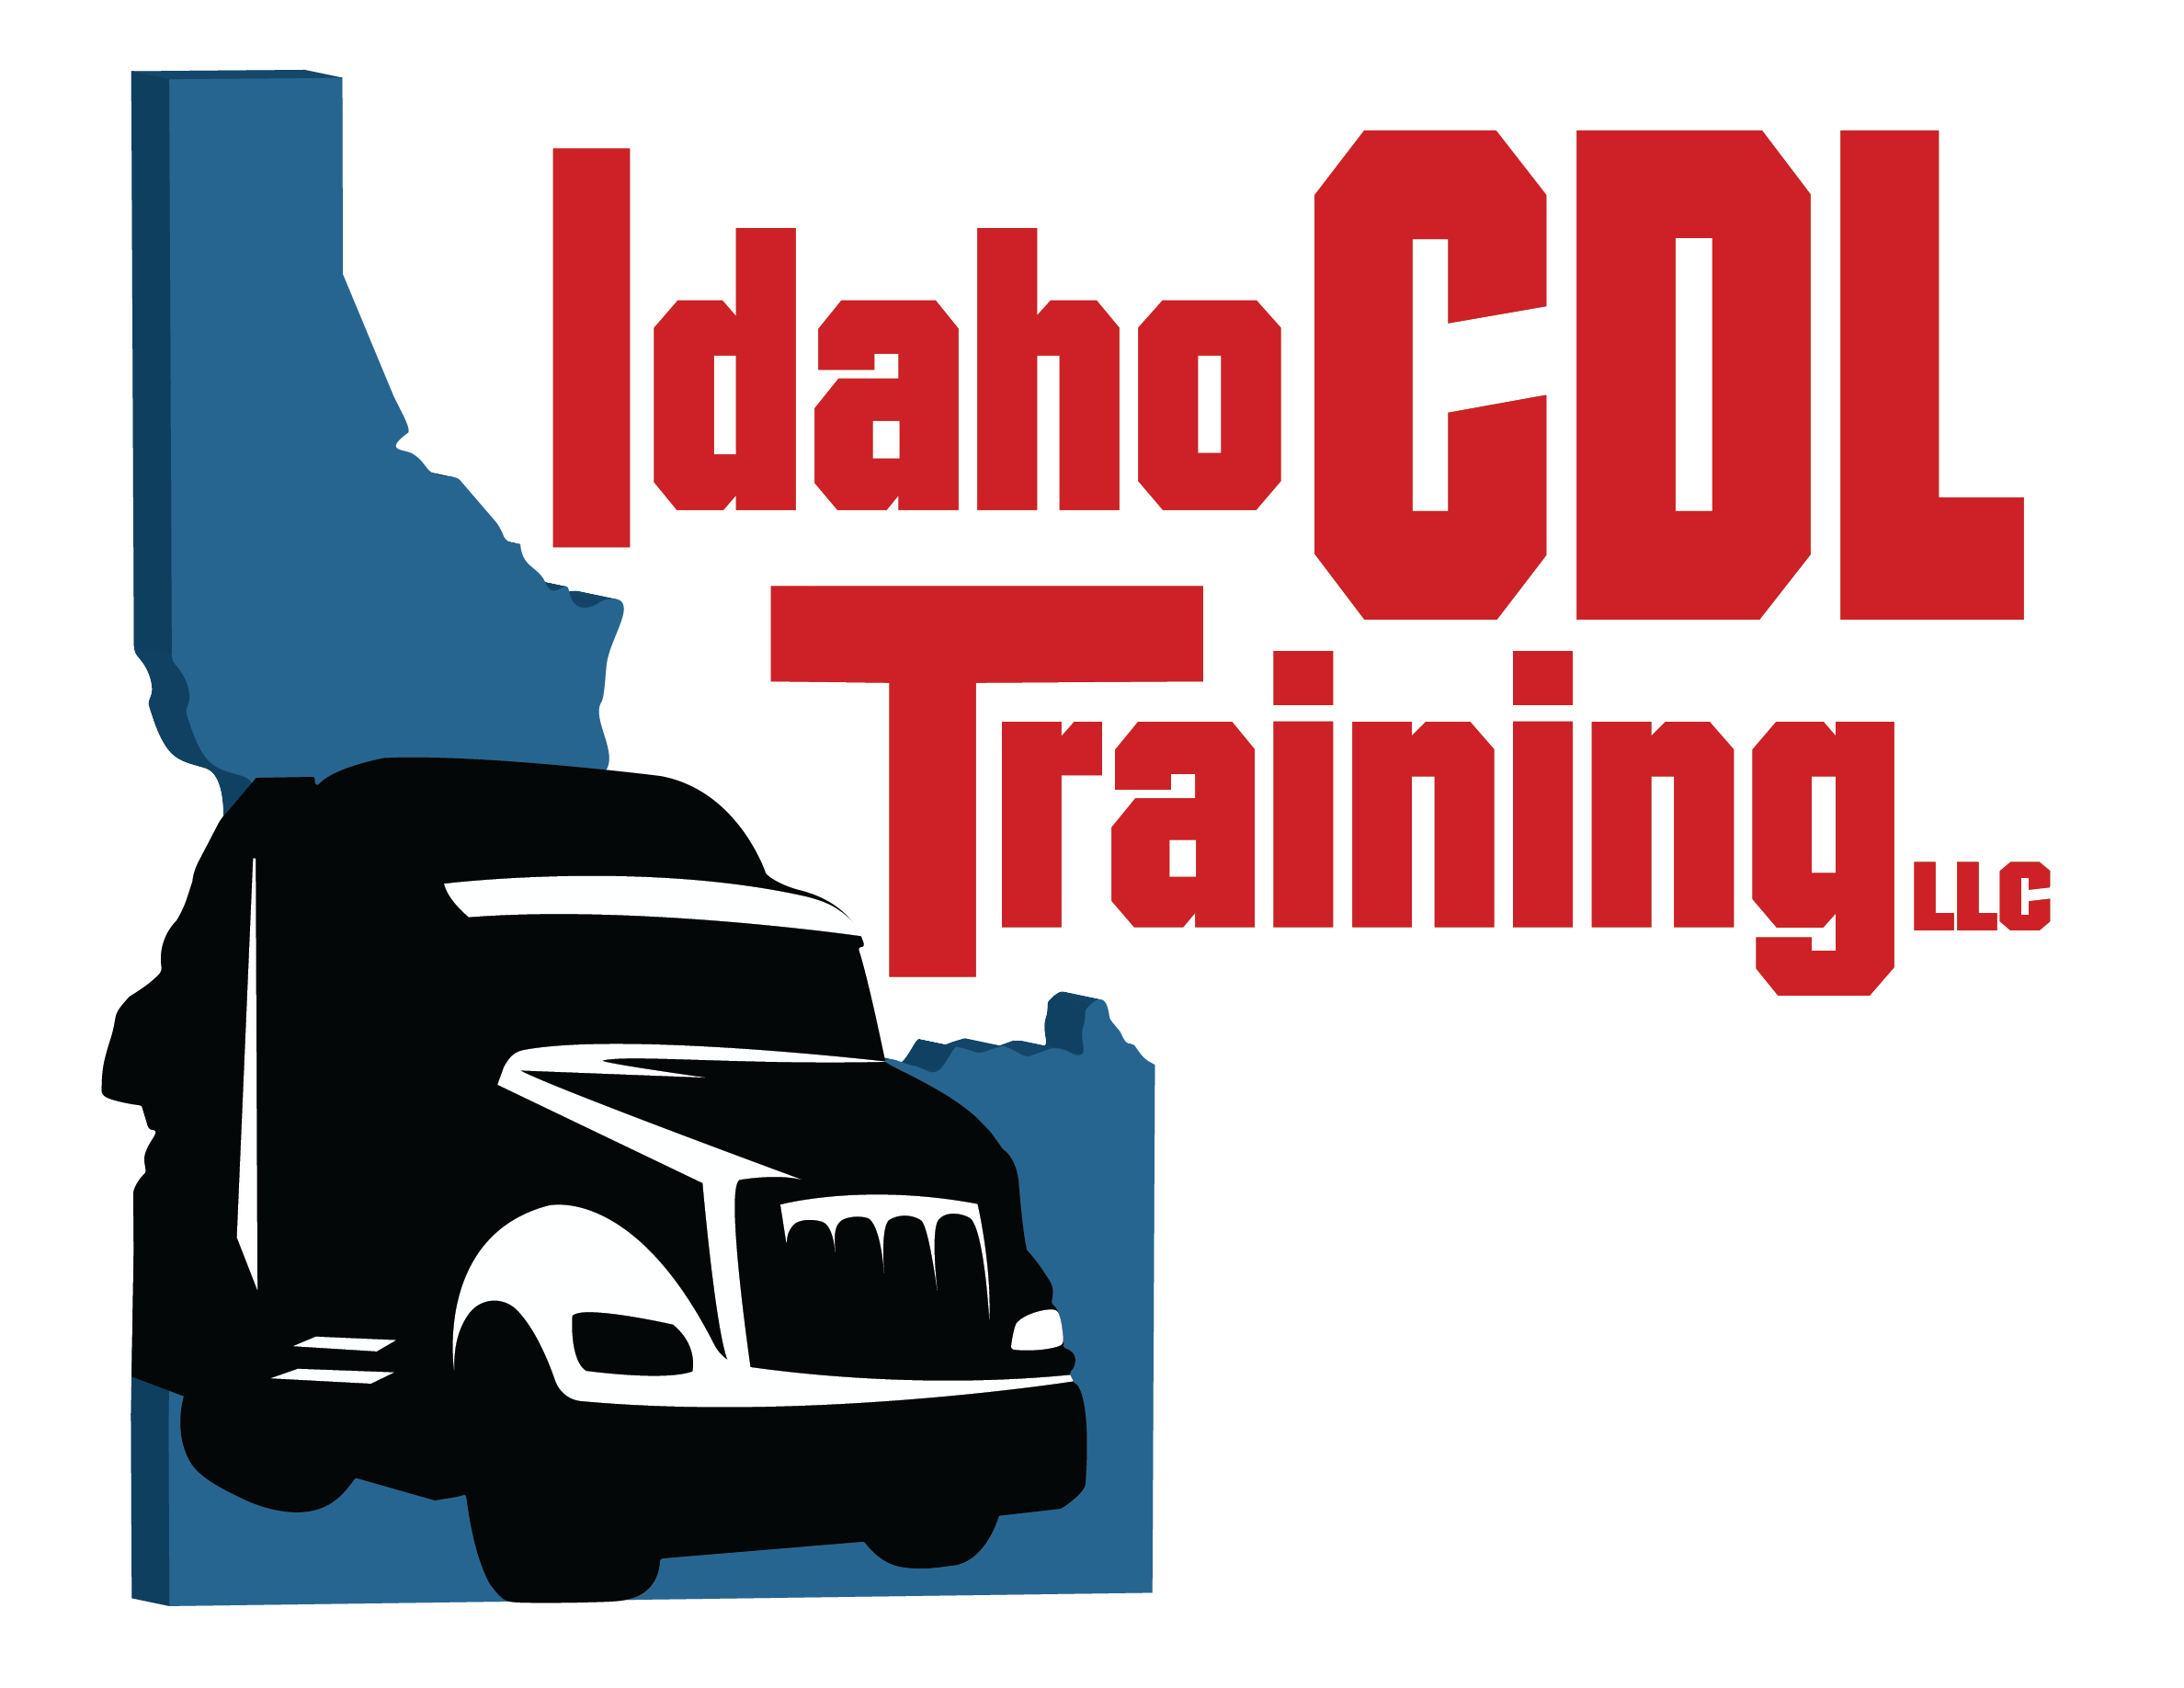 Idaho CDL Training Logo3x